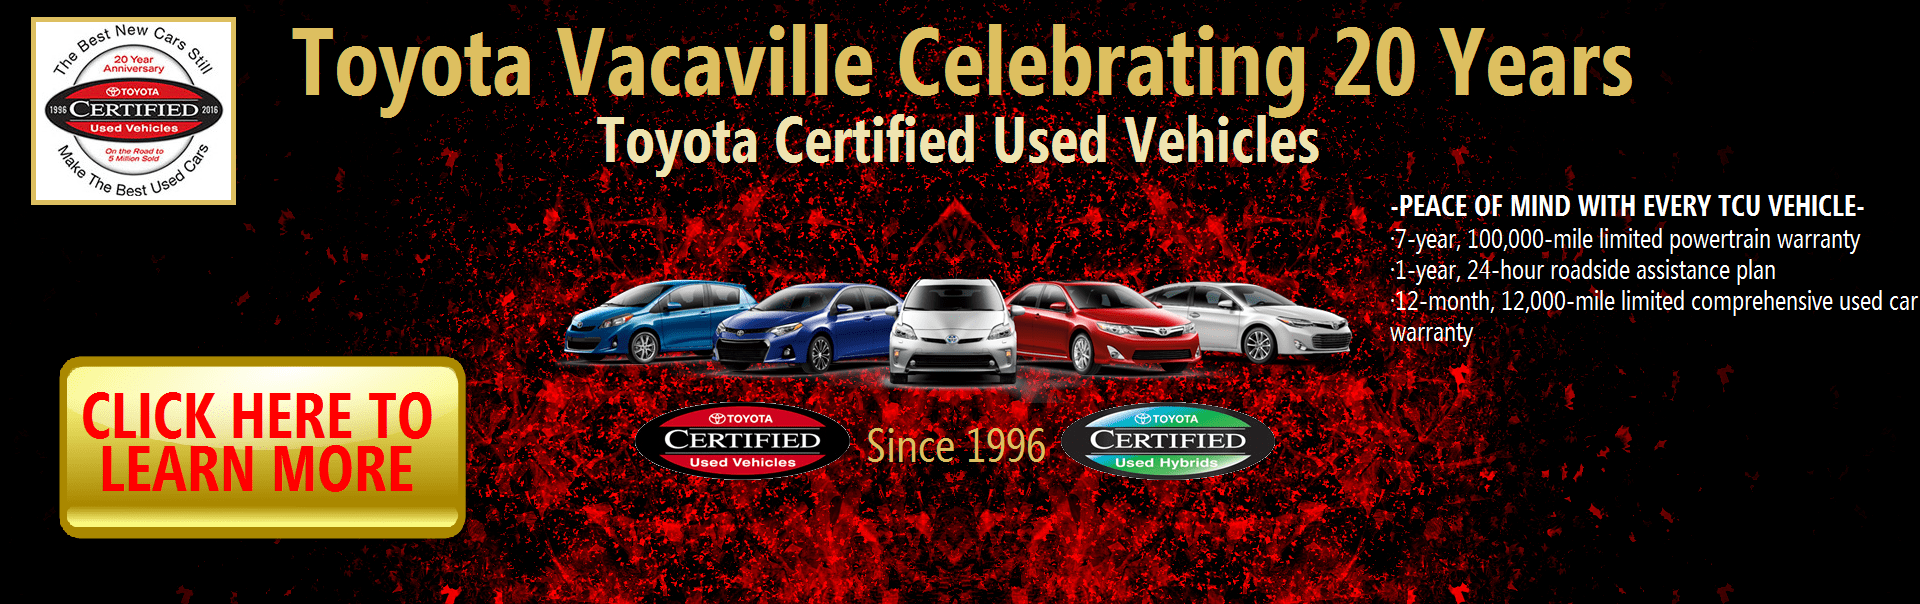 Toyota dealership vacaville ca used cars toyota vacaville toyota certified used vehicles in vacaville ca solutioingenieria Image collections